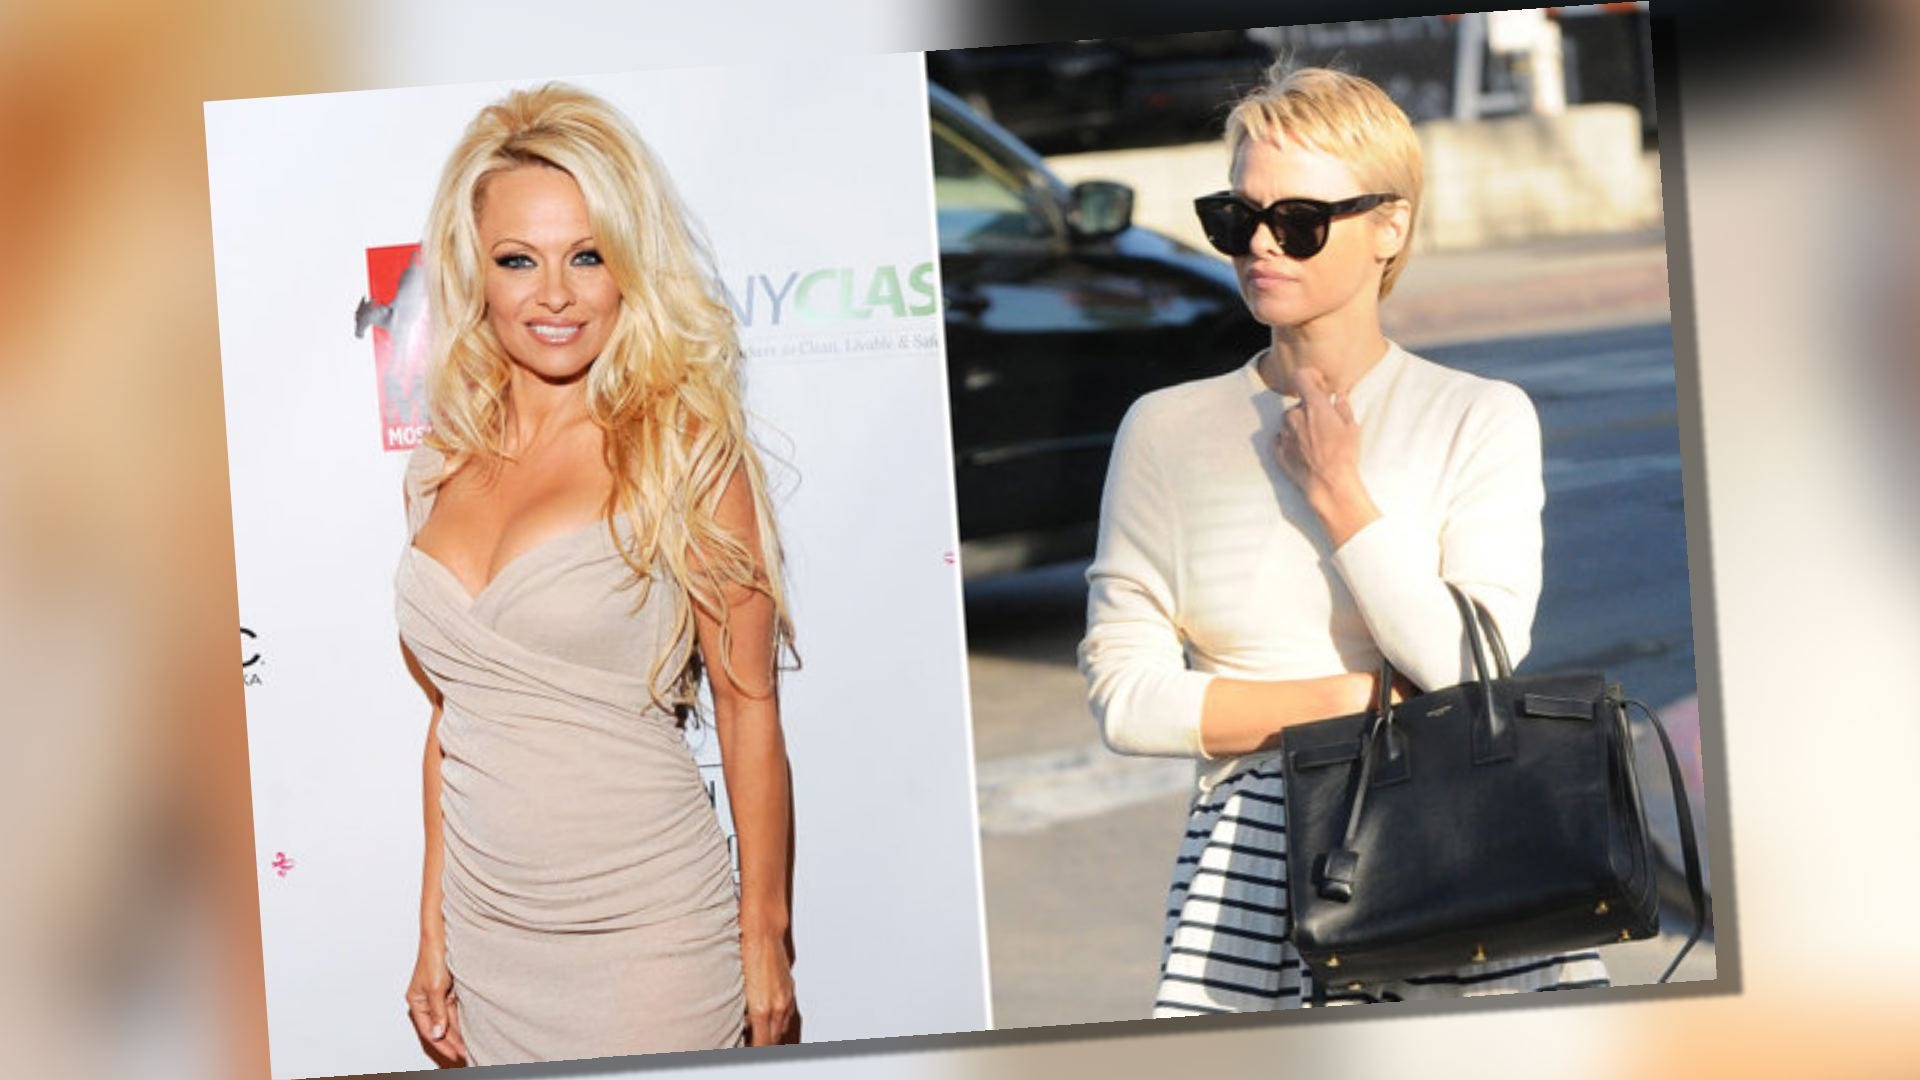 Are pixie cuts sexy? 'Baywatch' babe Pamela Anderson just got one ...